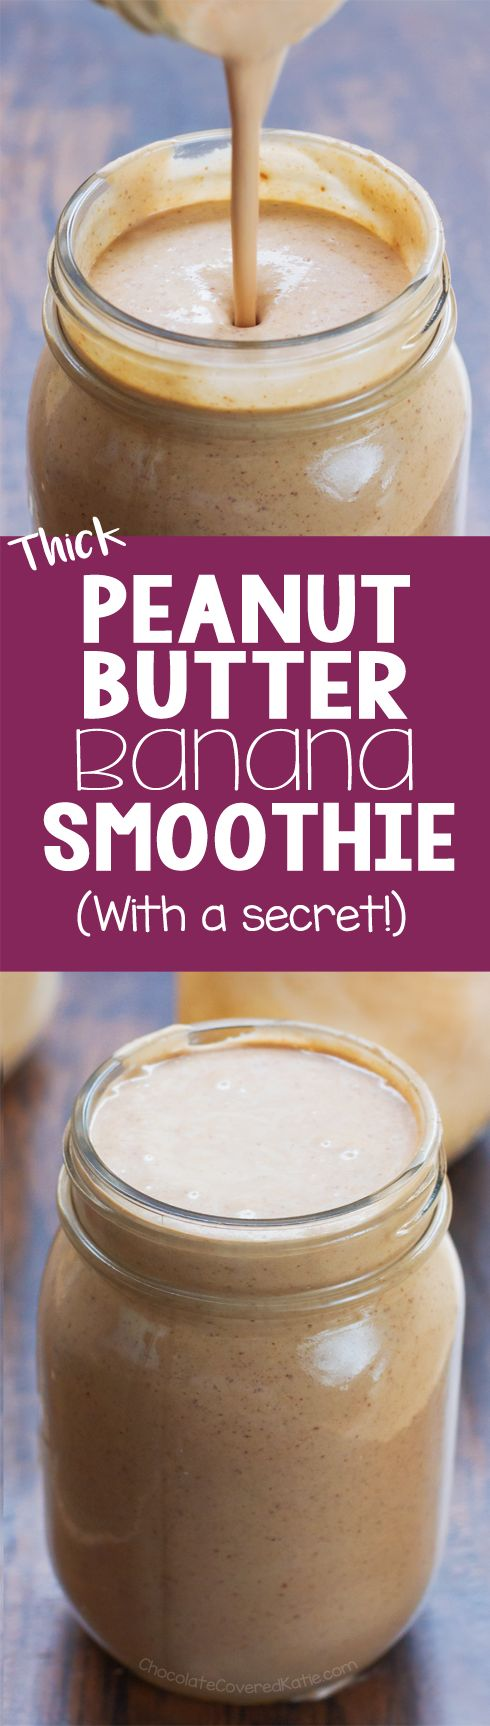 I make one of these smoothies every day for breakfast!